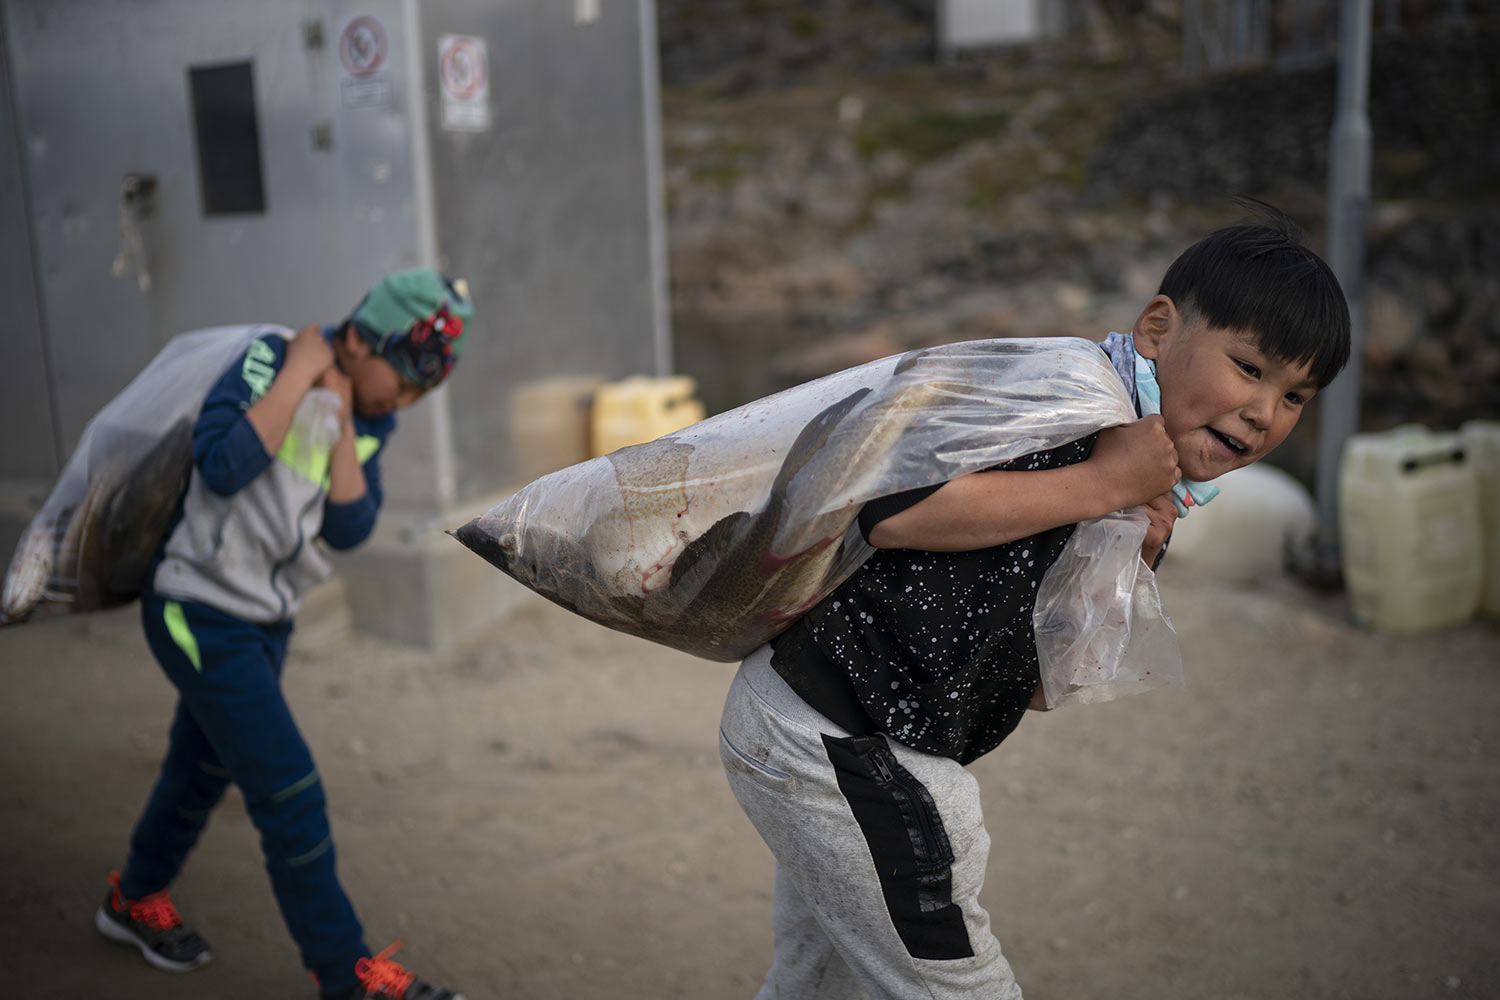 Boys carry plastic bags full of fish on Aug. 15, 2019, in Kulusuk, Greenland. According to local resident Mugu Utuaq, the winter that used to last as long as 10 months when he was a boy can now be as short as five months. Scientists are hard at work in Greenland, trying to understand the alarmingly rapid melting of the ice. (AP Photo/Felipe Dana)